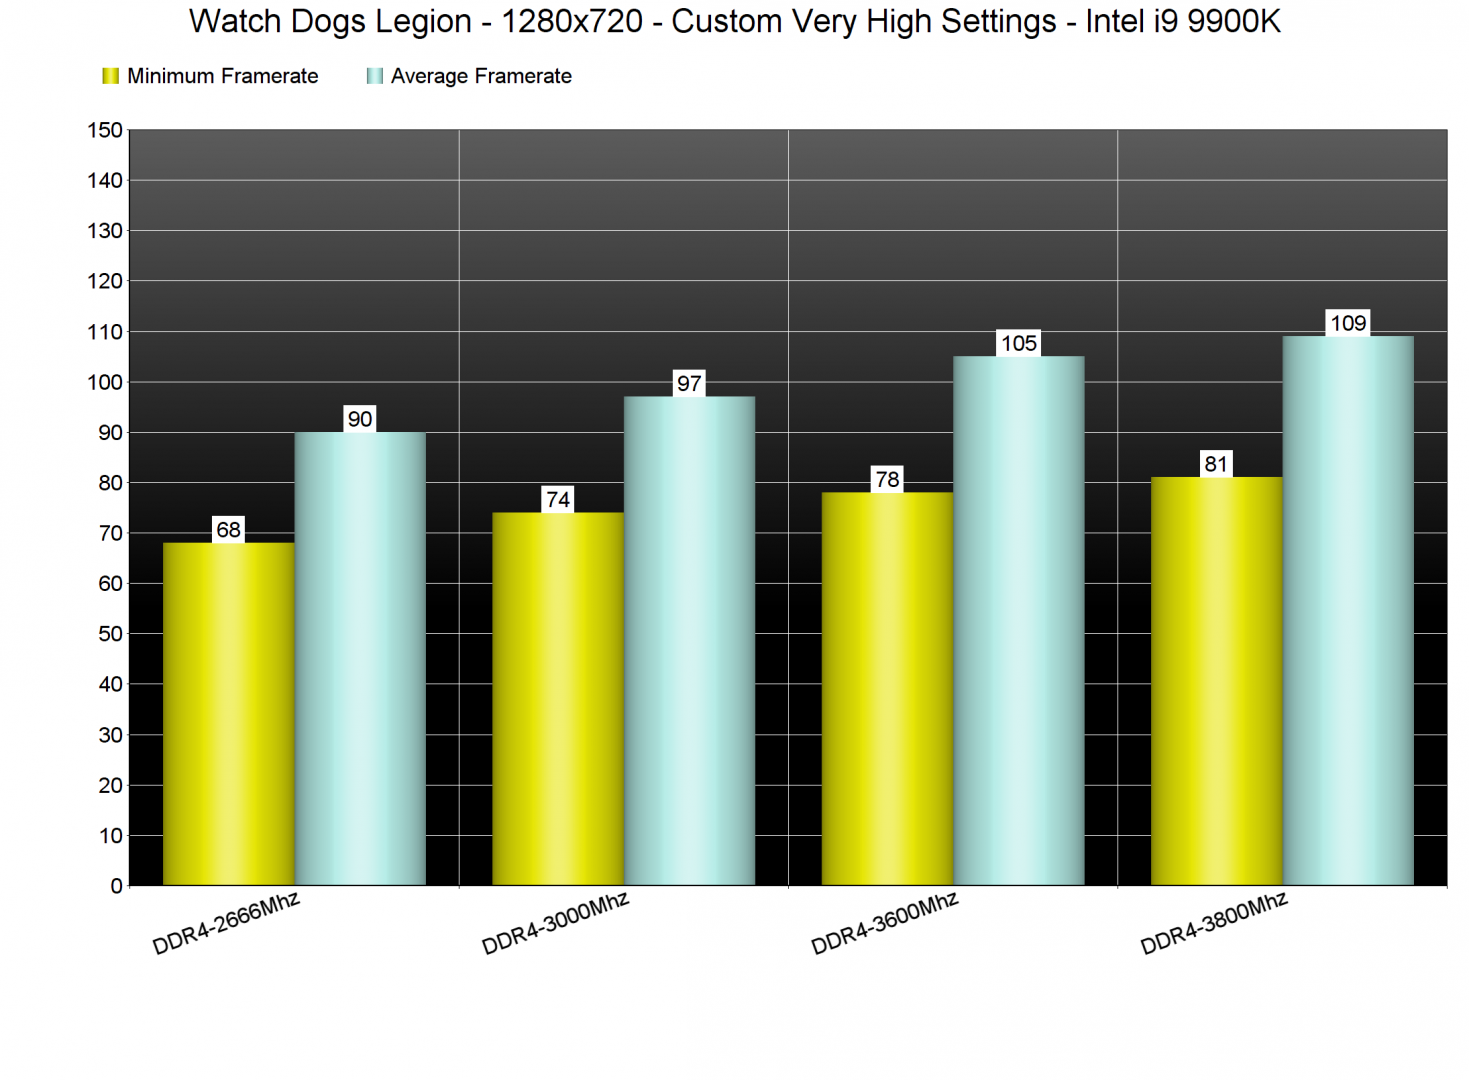 Watch Dogs Legion RAM frequency benchmarks